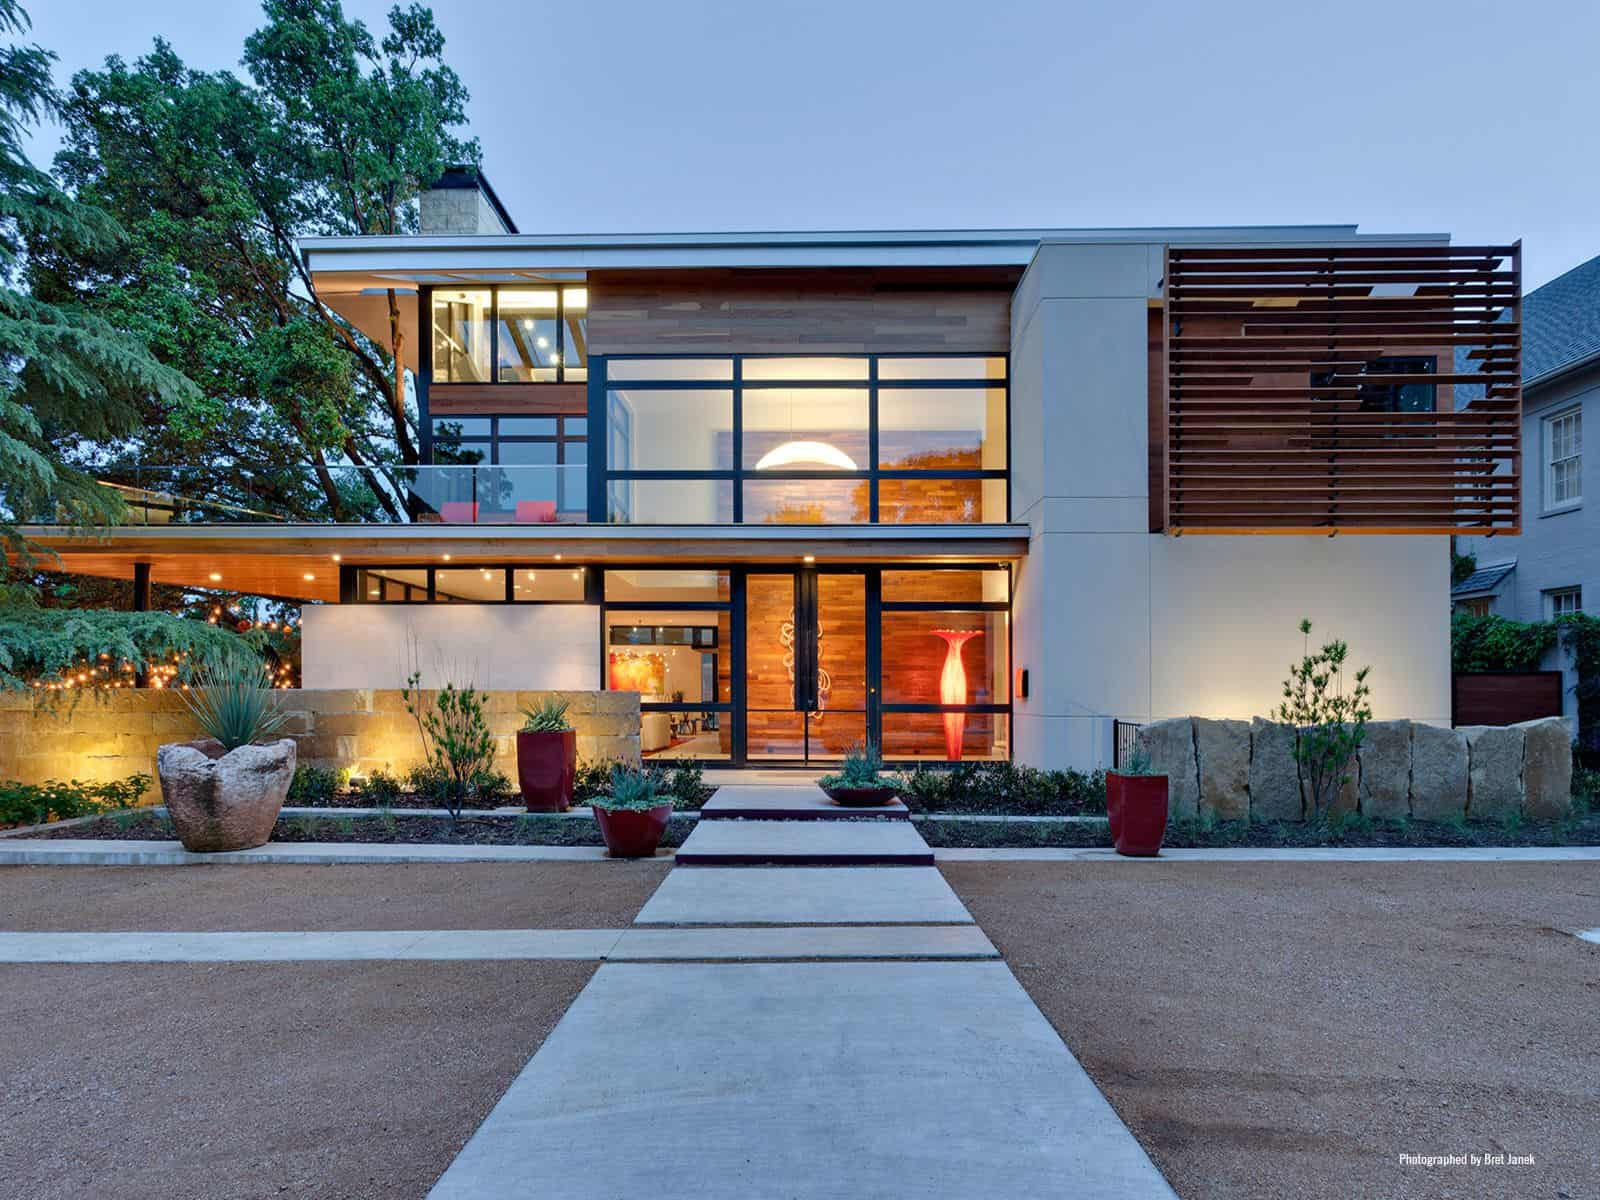 LEED Gold Certified House with Bohemian Style